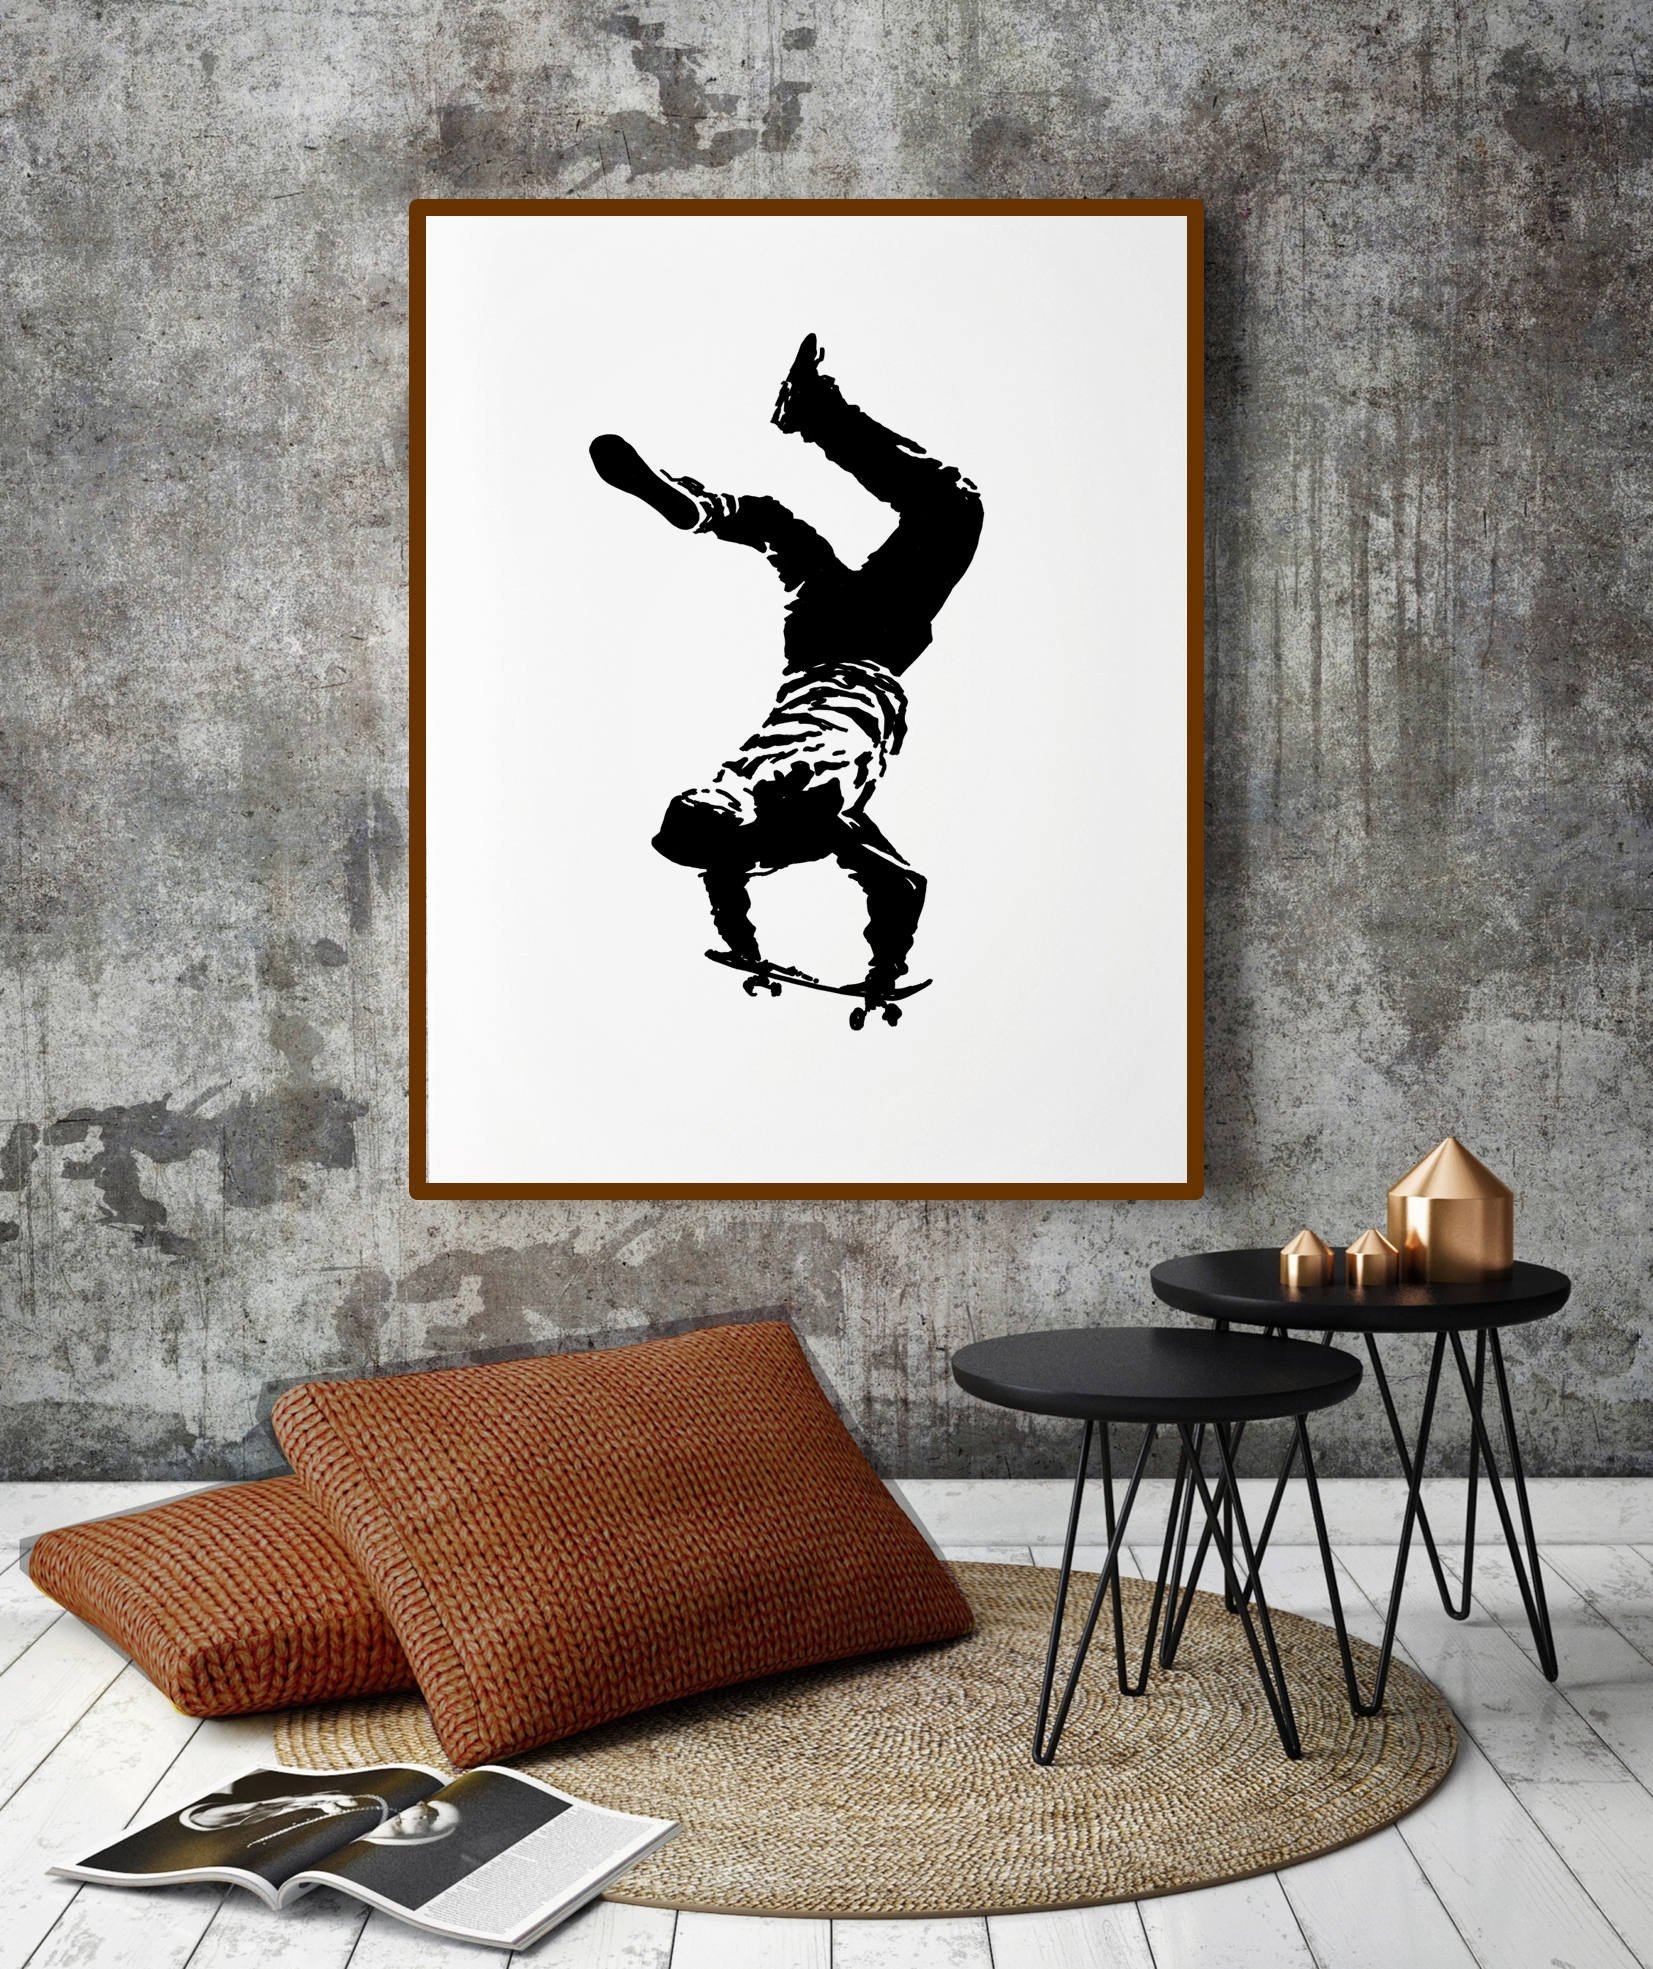 Sports Bedroom Decorating Ideas Luxury Teen Boy Wall Art Skateboard Art Teen Boy Gift Boy Room Art Boyfriend Gift Teen Room Decor Dorm Wall Art Teen Art Boy Bedroom Decor